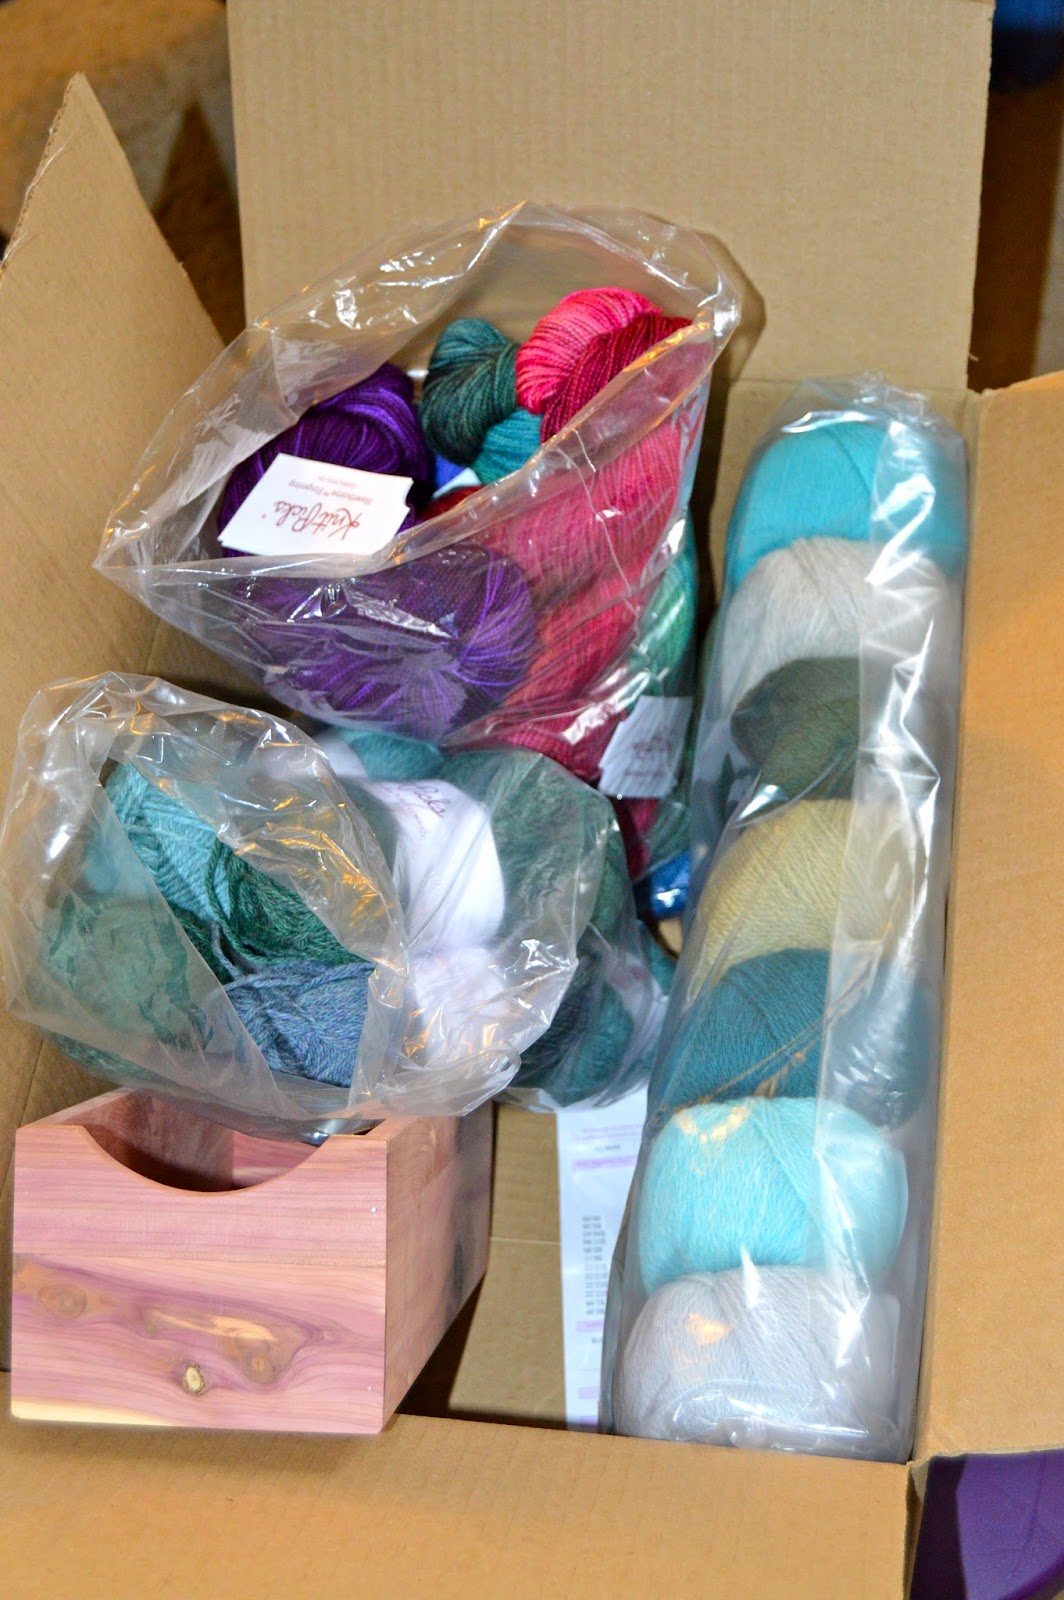 Knit Picks, yarn stash, Hawthorne, Palette, Wool of the Andes, yarn binge